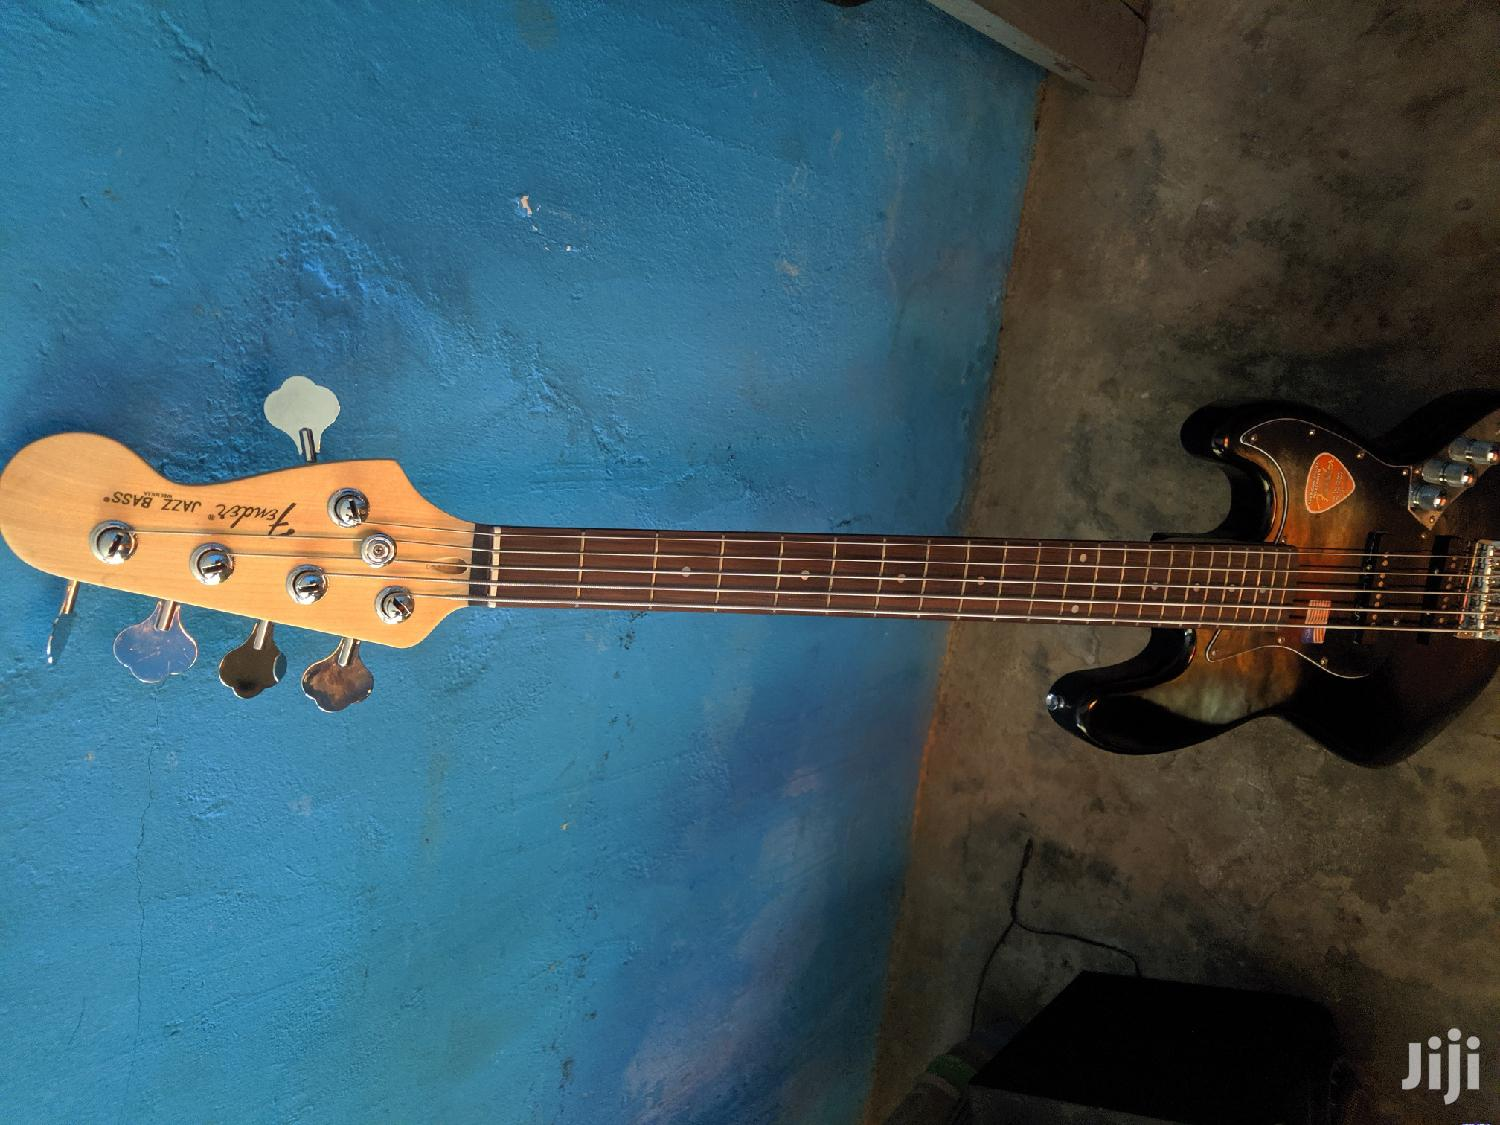 Fender 5 String Bass Guitar | Musical Instruments & Gear for sale in Ga South Municipal, Greater Accra, Ghana